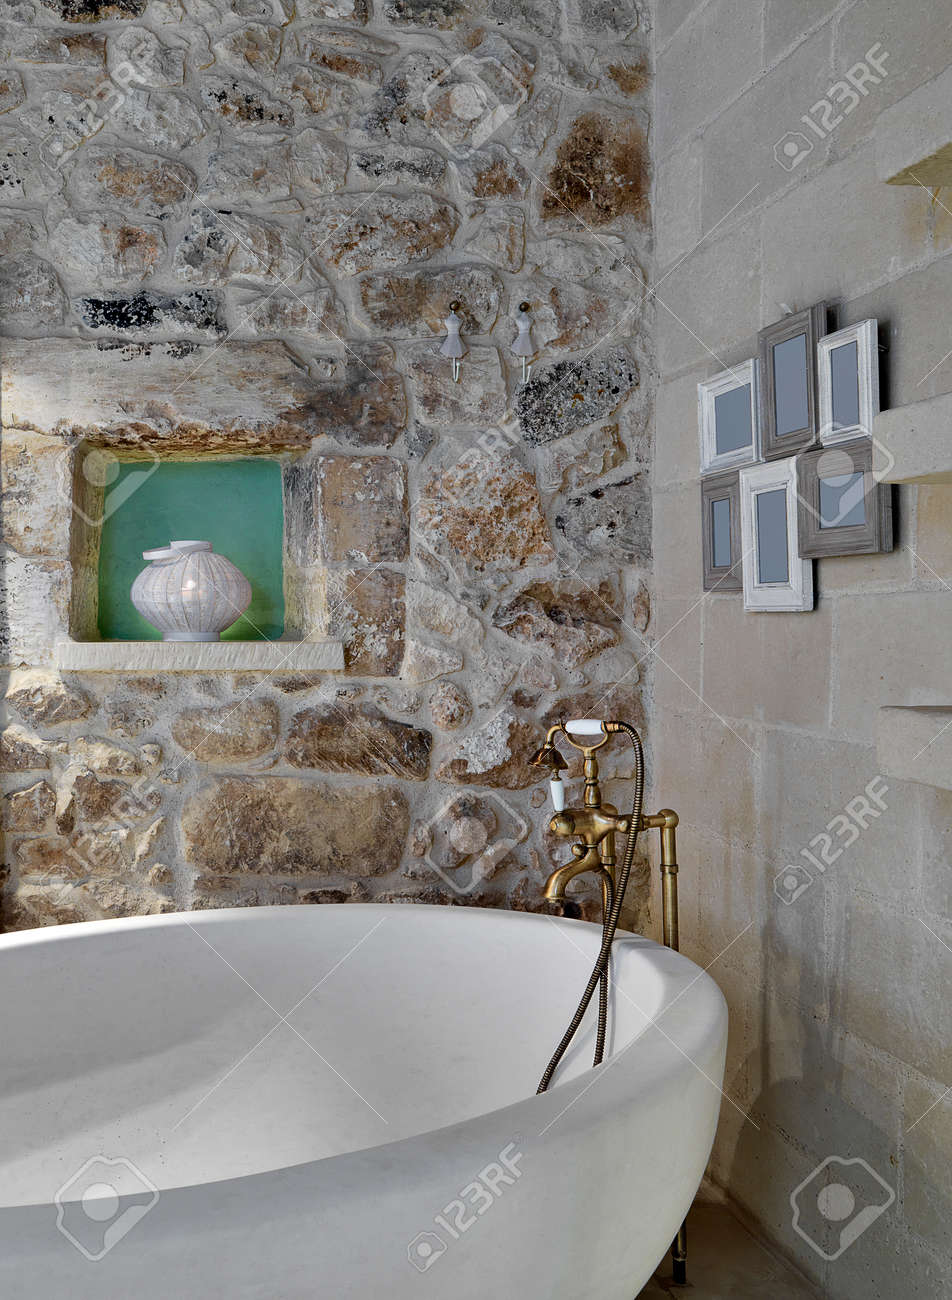 Detail Of Bathtub In A Rustic Bathroom With Stone Walls And Niche ...